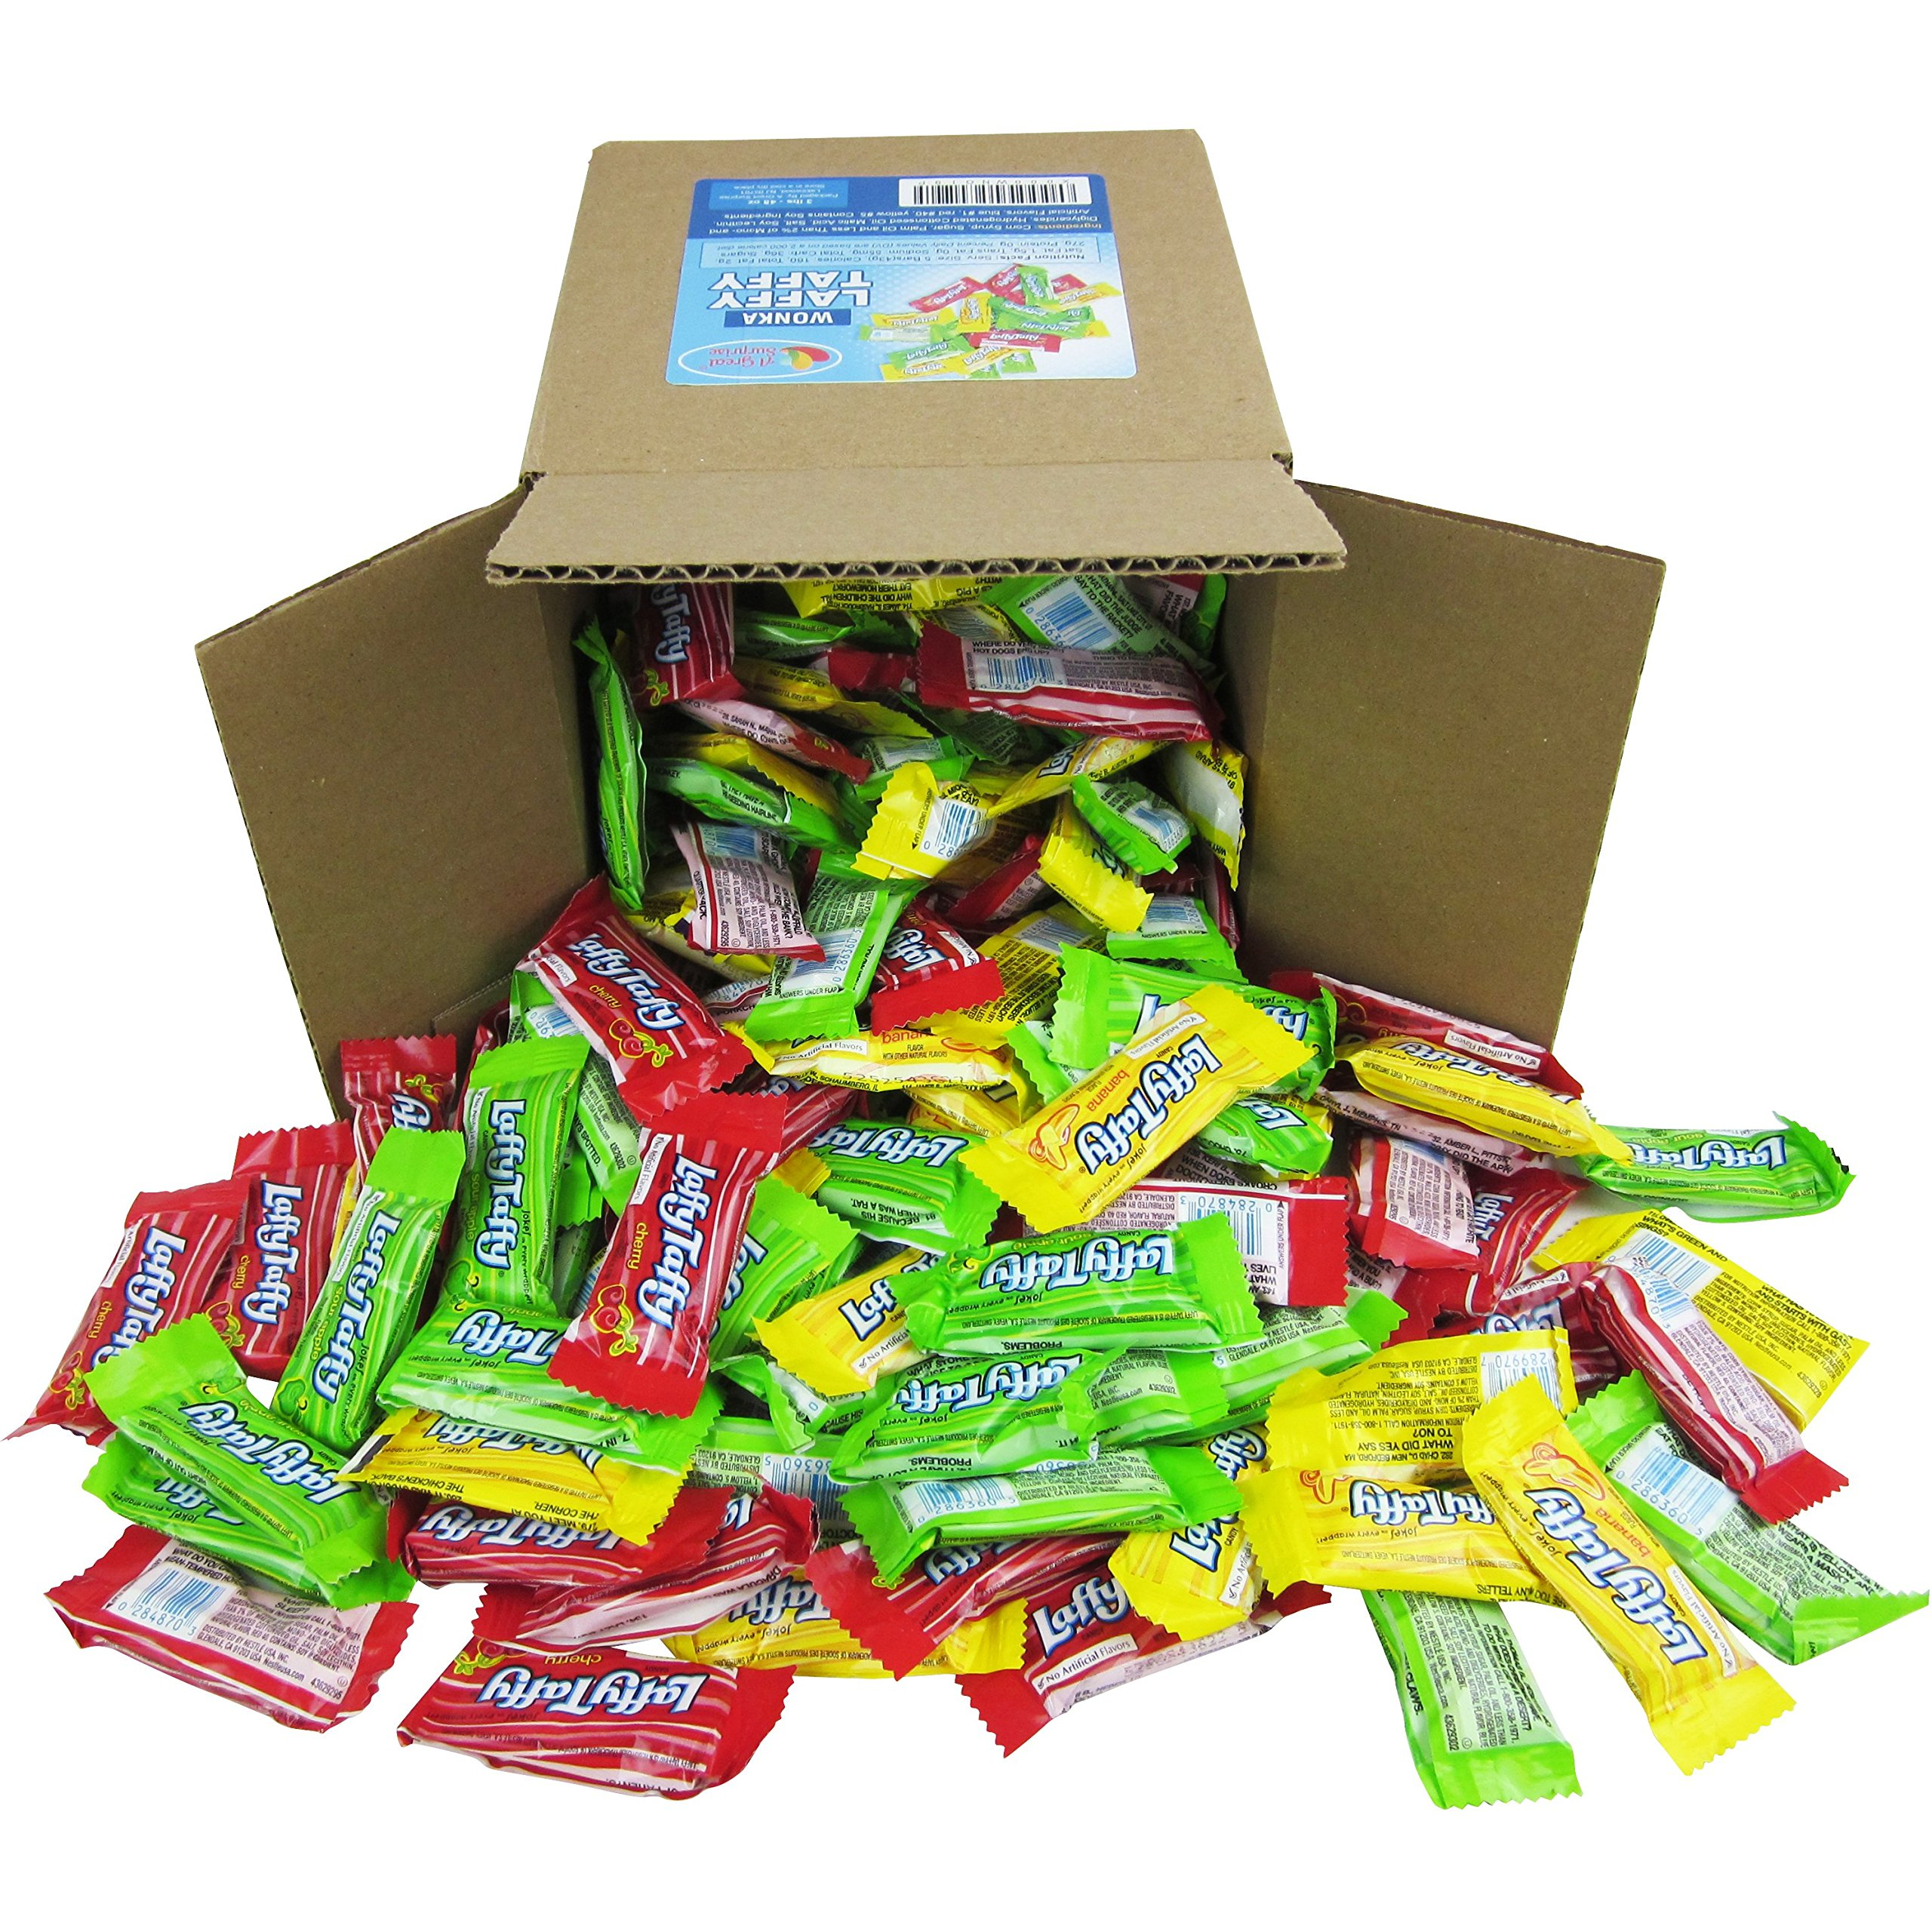 Laffy Taffy Assorted Fruit Flavors, Cherry Green Apple Banana Candy Bulk Party Box - 6x6x6 Family Size by A Great Surprise